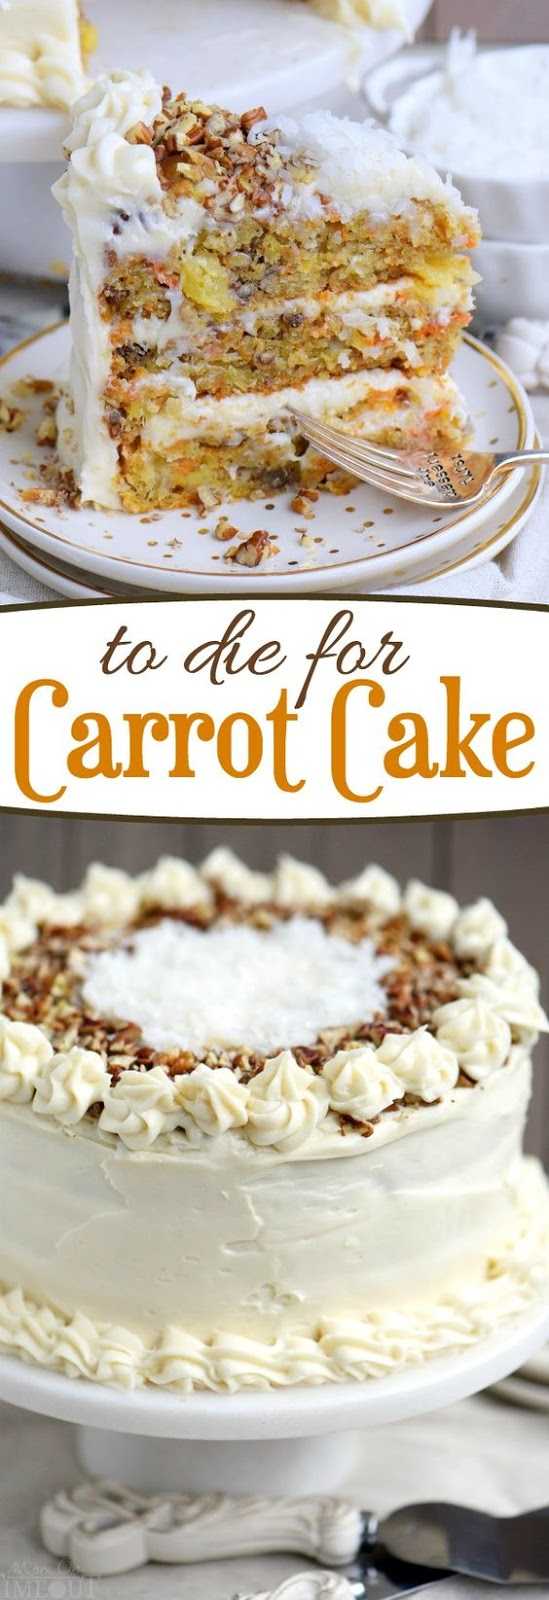 The BEST Carrot Cake you'll ever try! So easy to make and as an added bonus, there's no oil or butter! This To Die For Carrot Cake receives rave reviews for it's unbelievable moistness and flavor! I know this cake will quickly become a family favorite! // Mom On Timeout #carrot #cake #recipe #best #carrotcake #pineapple #applesauce #dessert #cakes #Easter #cake #recipe #baking #sweets #carrots #pecans #creamcheese #frosting #nooil #nobutter